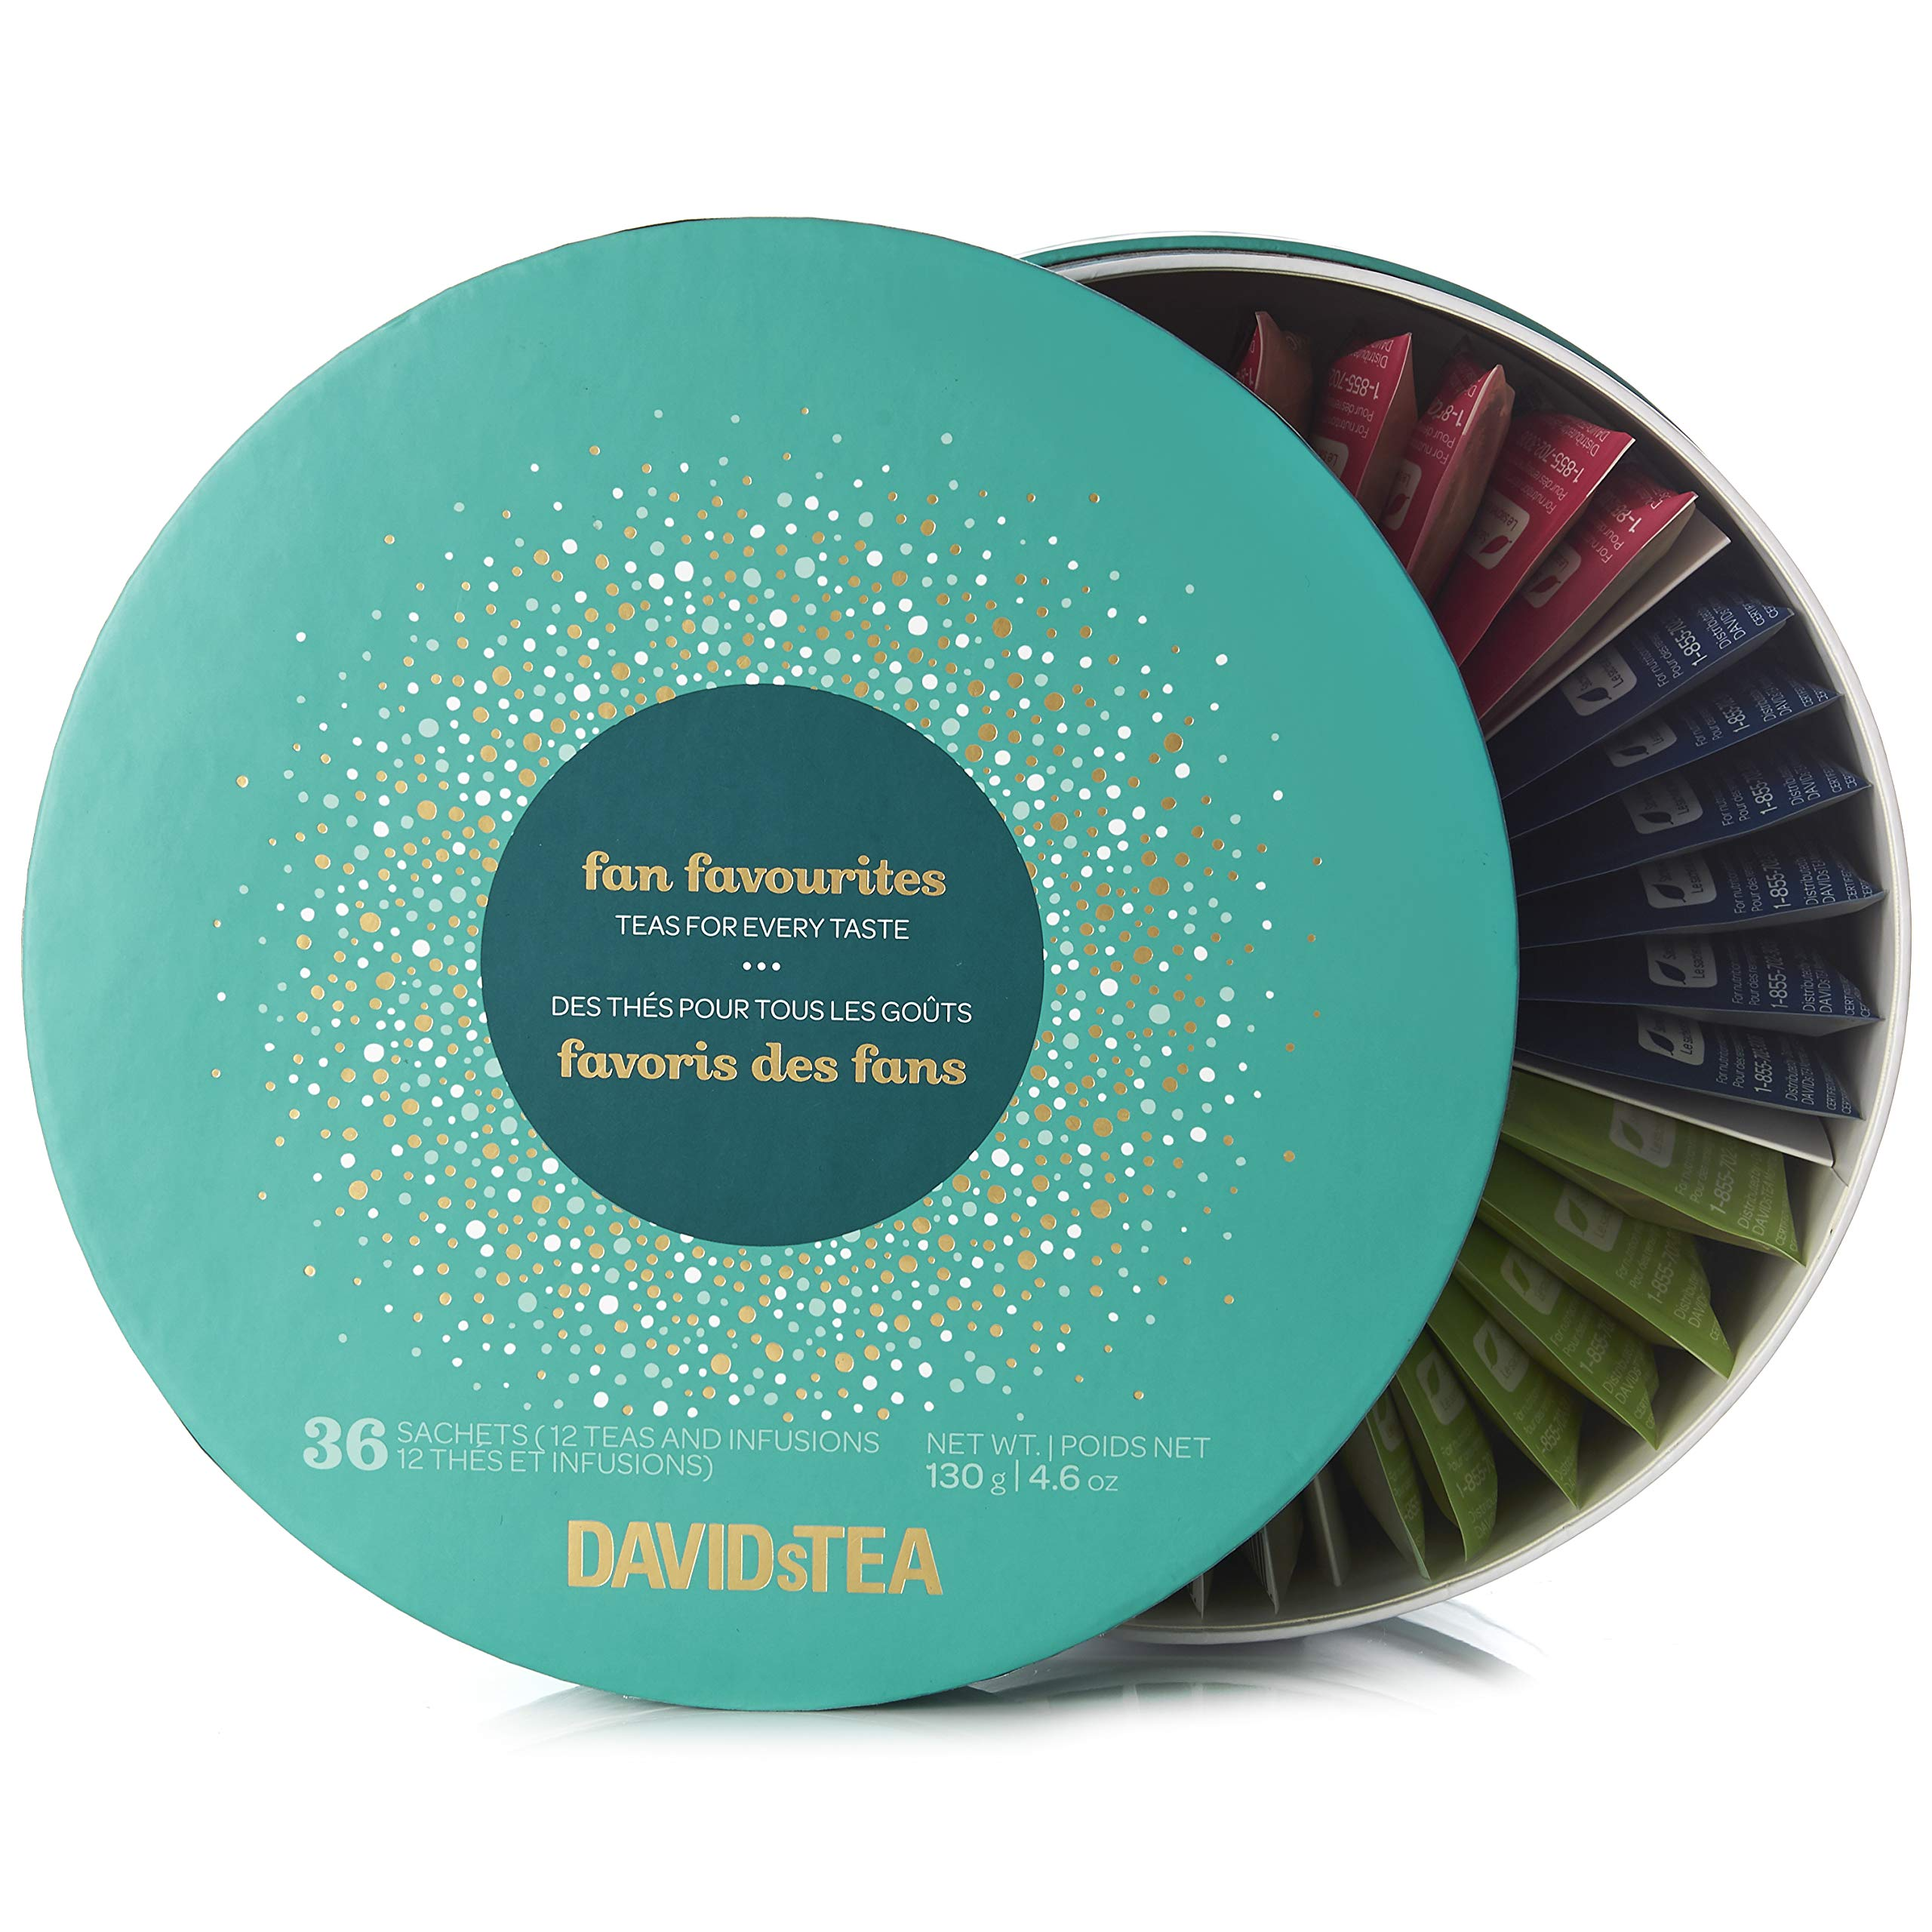 DAVIDsTEA Sachet Tea Wheel Tea Assortment Box, Tea Gift Set, Ready-to-Steep, No Filters Needed, 36 sachets, 4.6 oz (Fan Favorites)